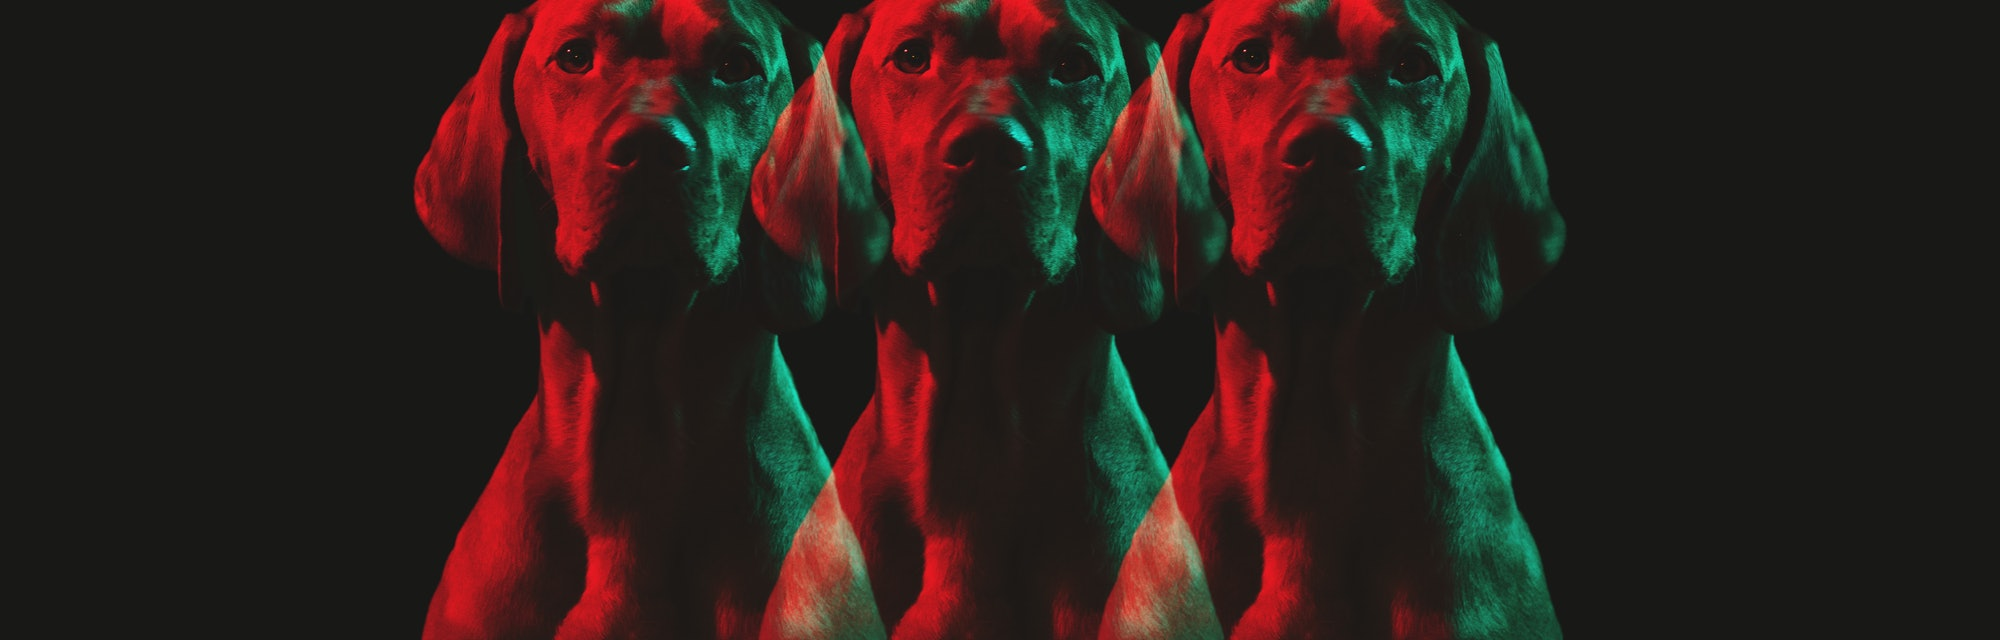 Multiple images of dog with red and green tint